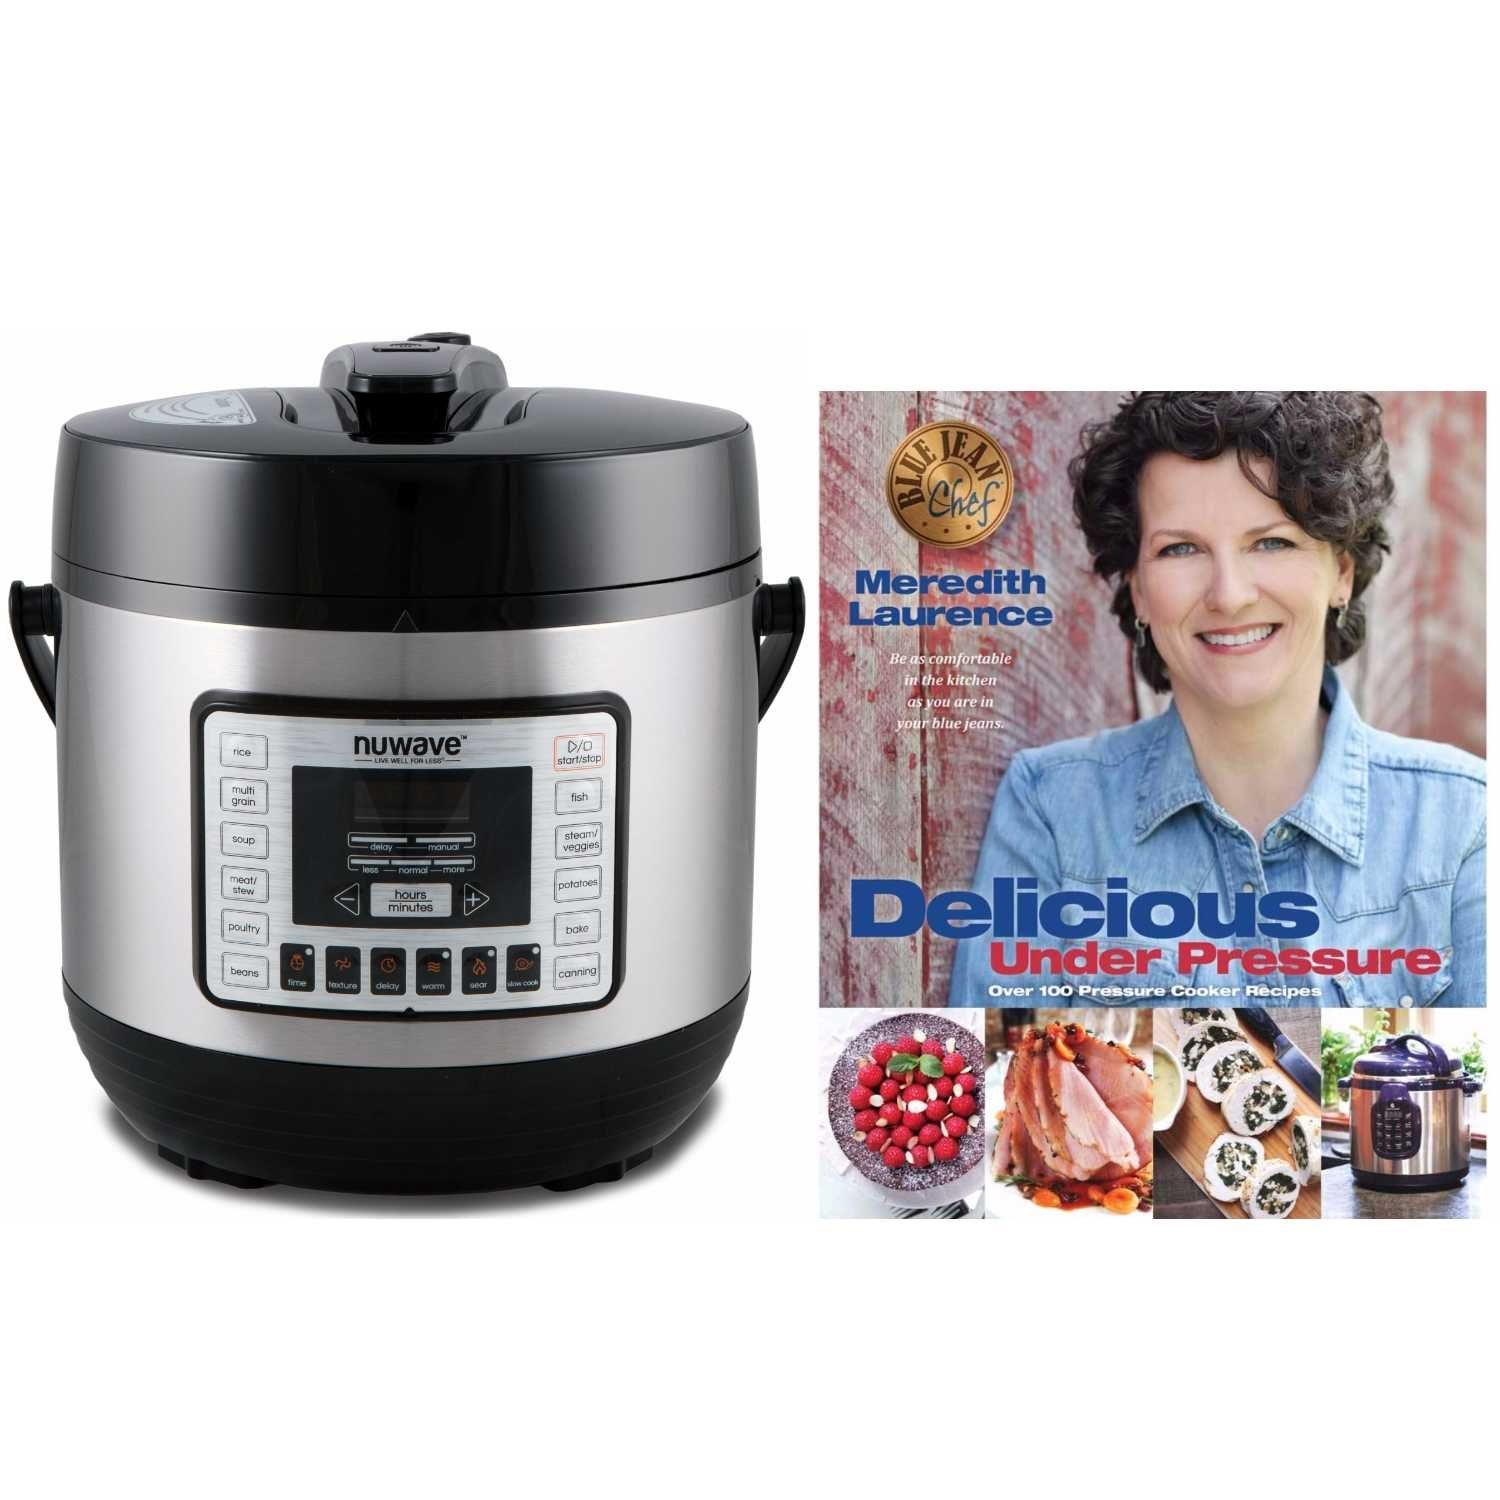 Nuwave 6 qt. Electric Pressure Cooker with'' Delicious Under Pressure'' Cookbook